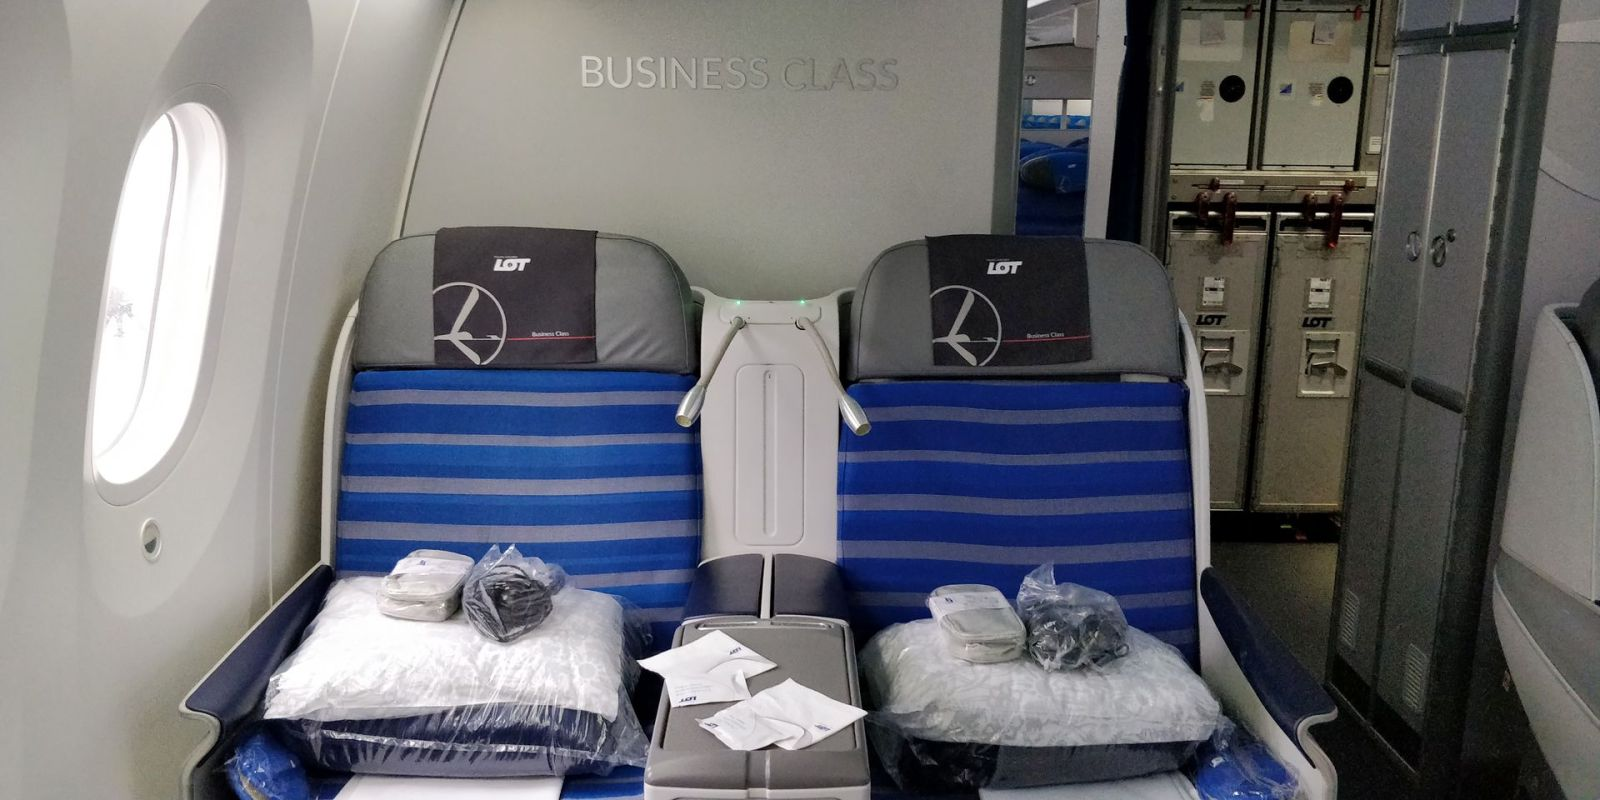 LOT long haul Business Class Seat